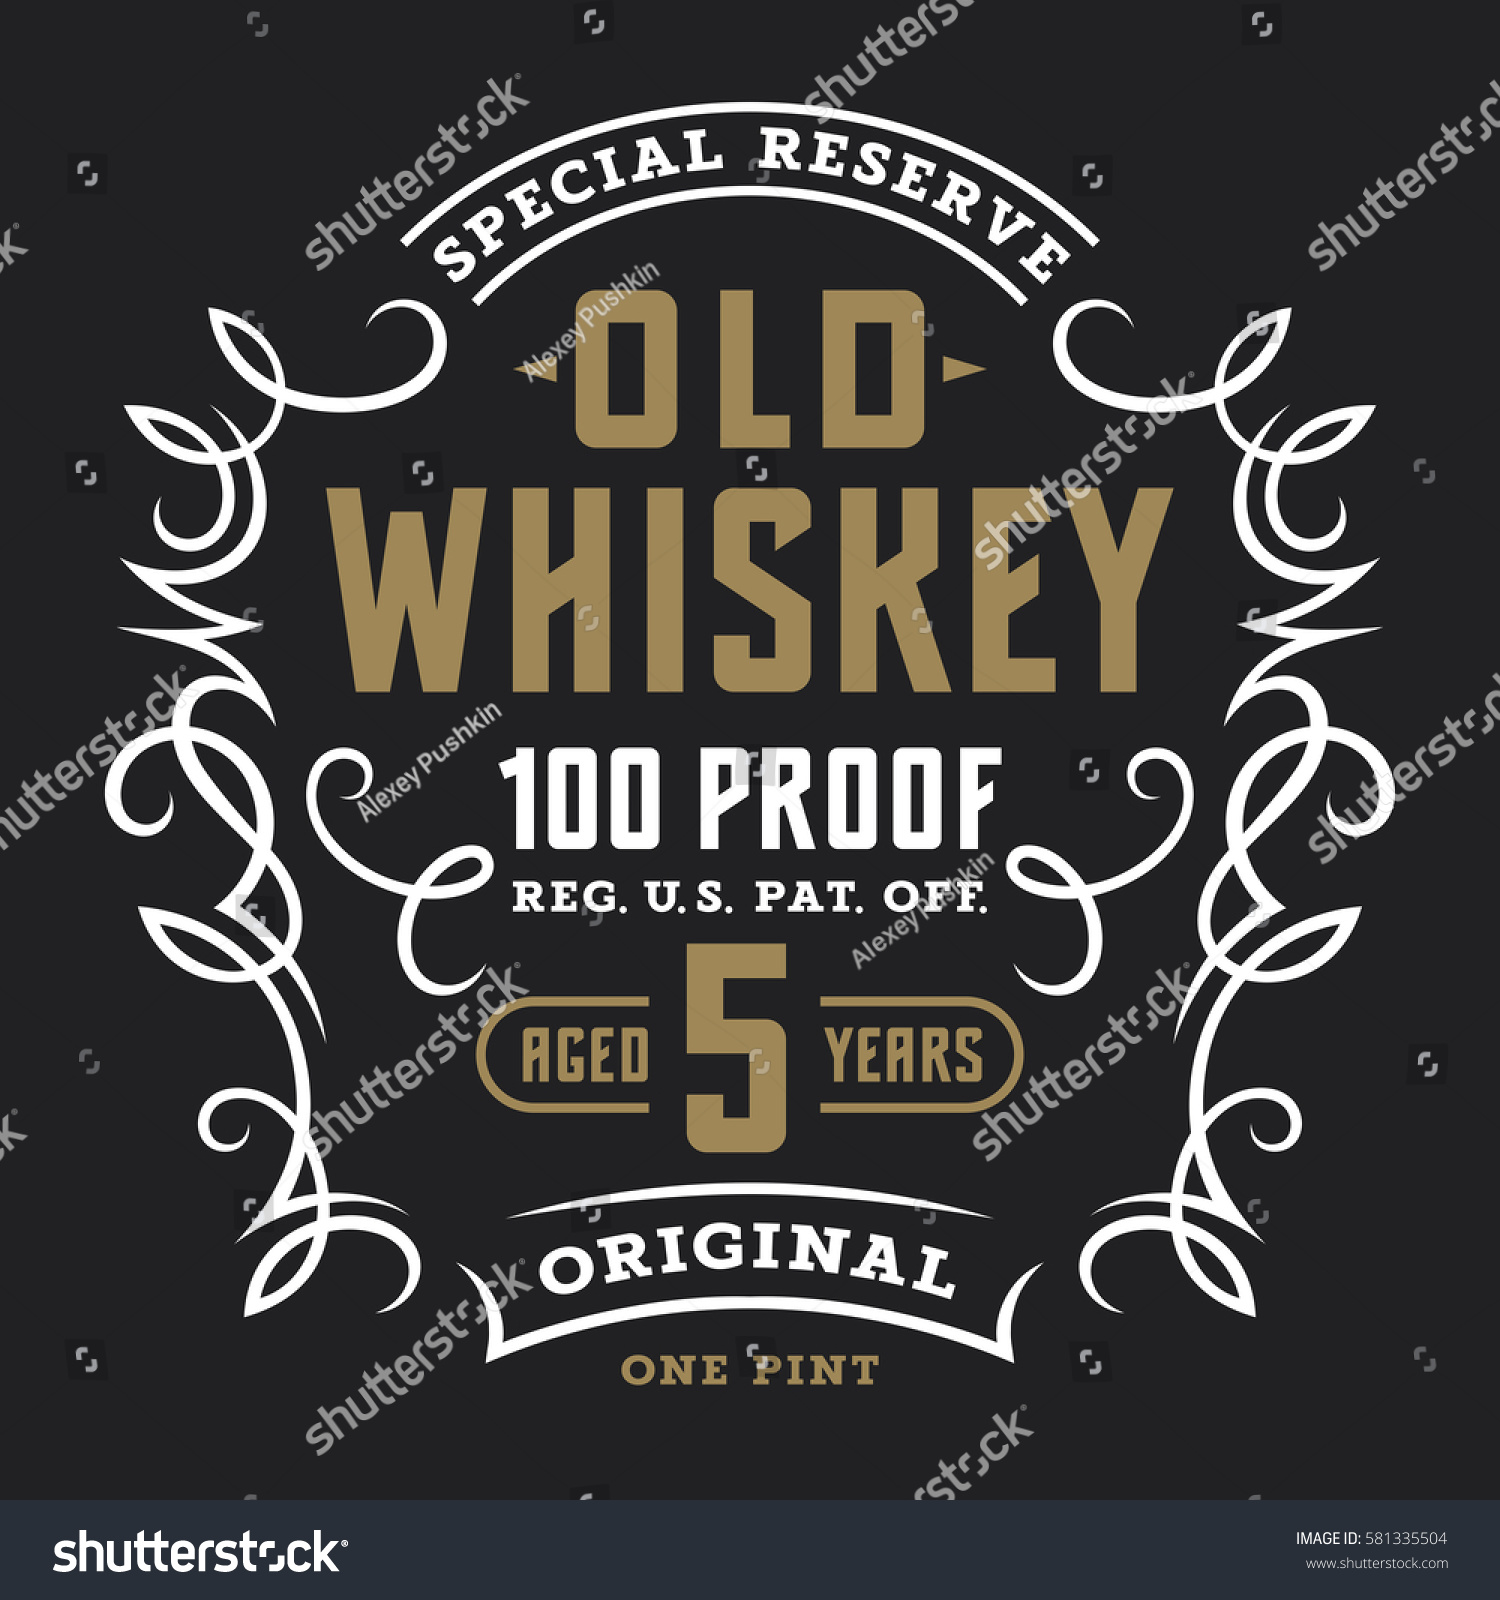 Vintage Whiskey Label Template Calligraphic Design Stock Vector ...